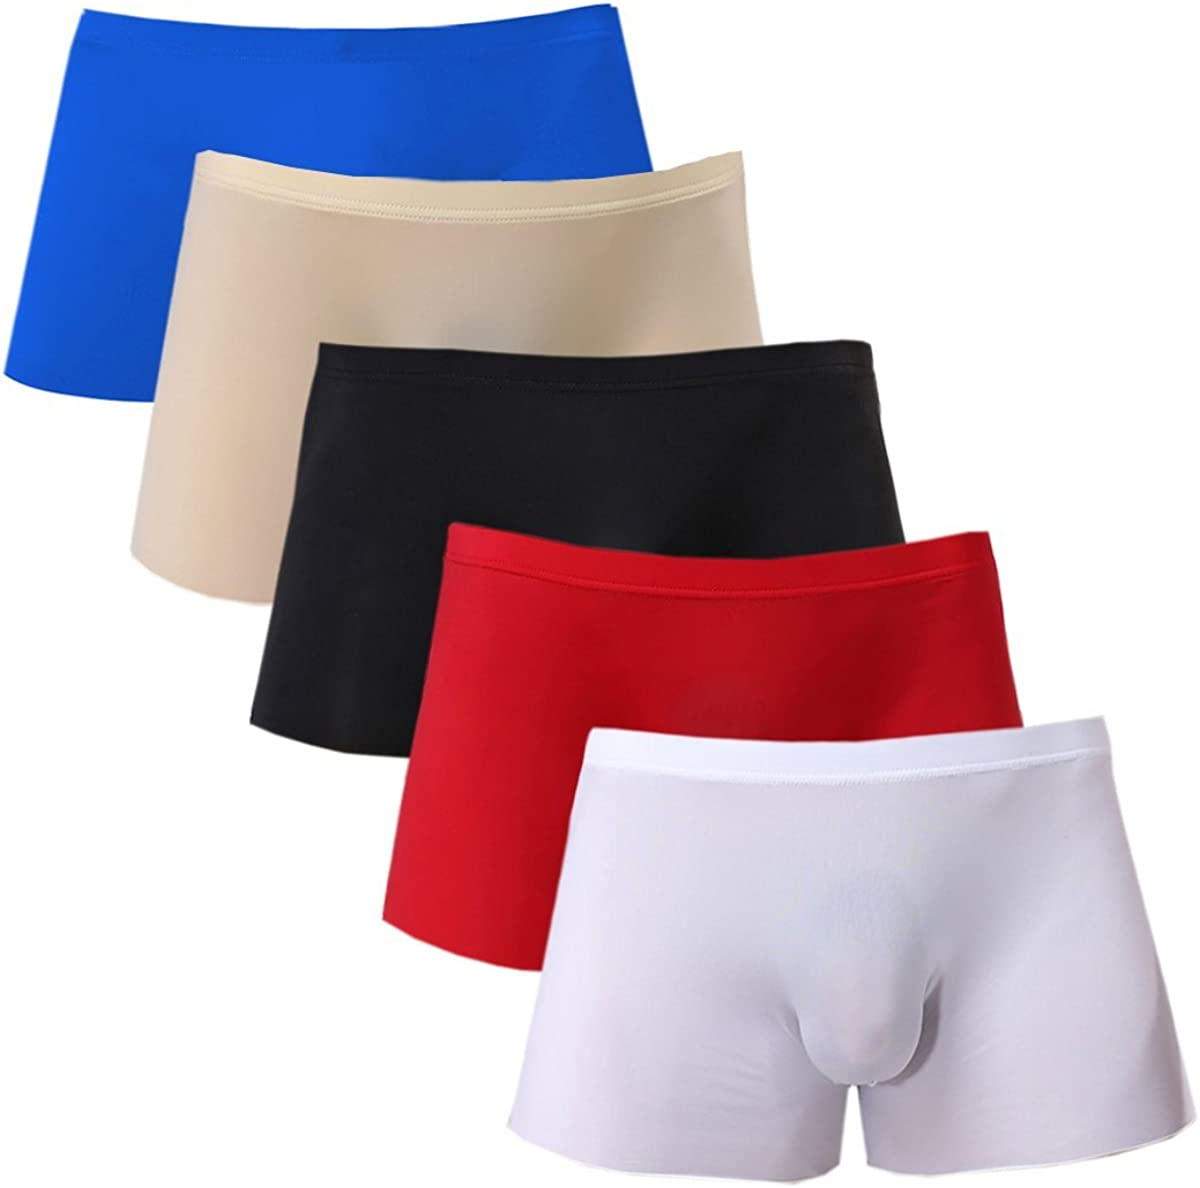 Mens Inexpensive Max 85% OFF Silky Underwear Sexy Boxer Briefs Seamless